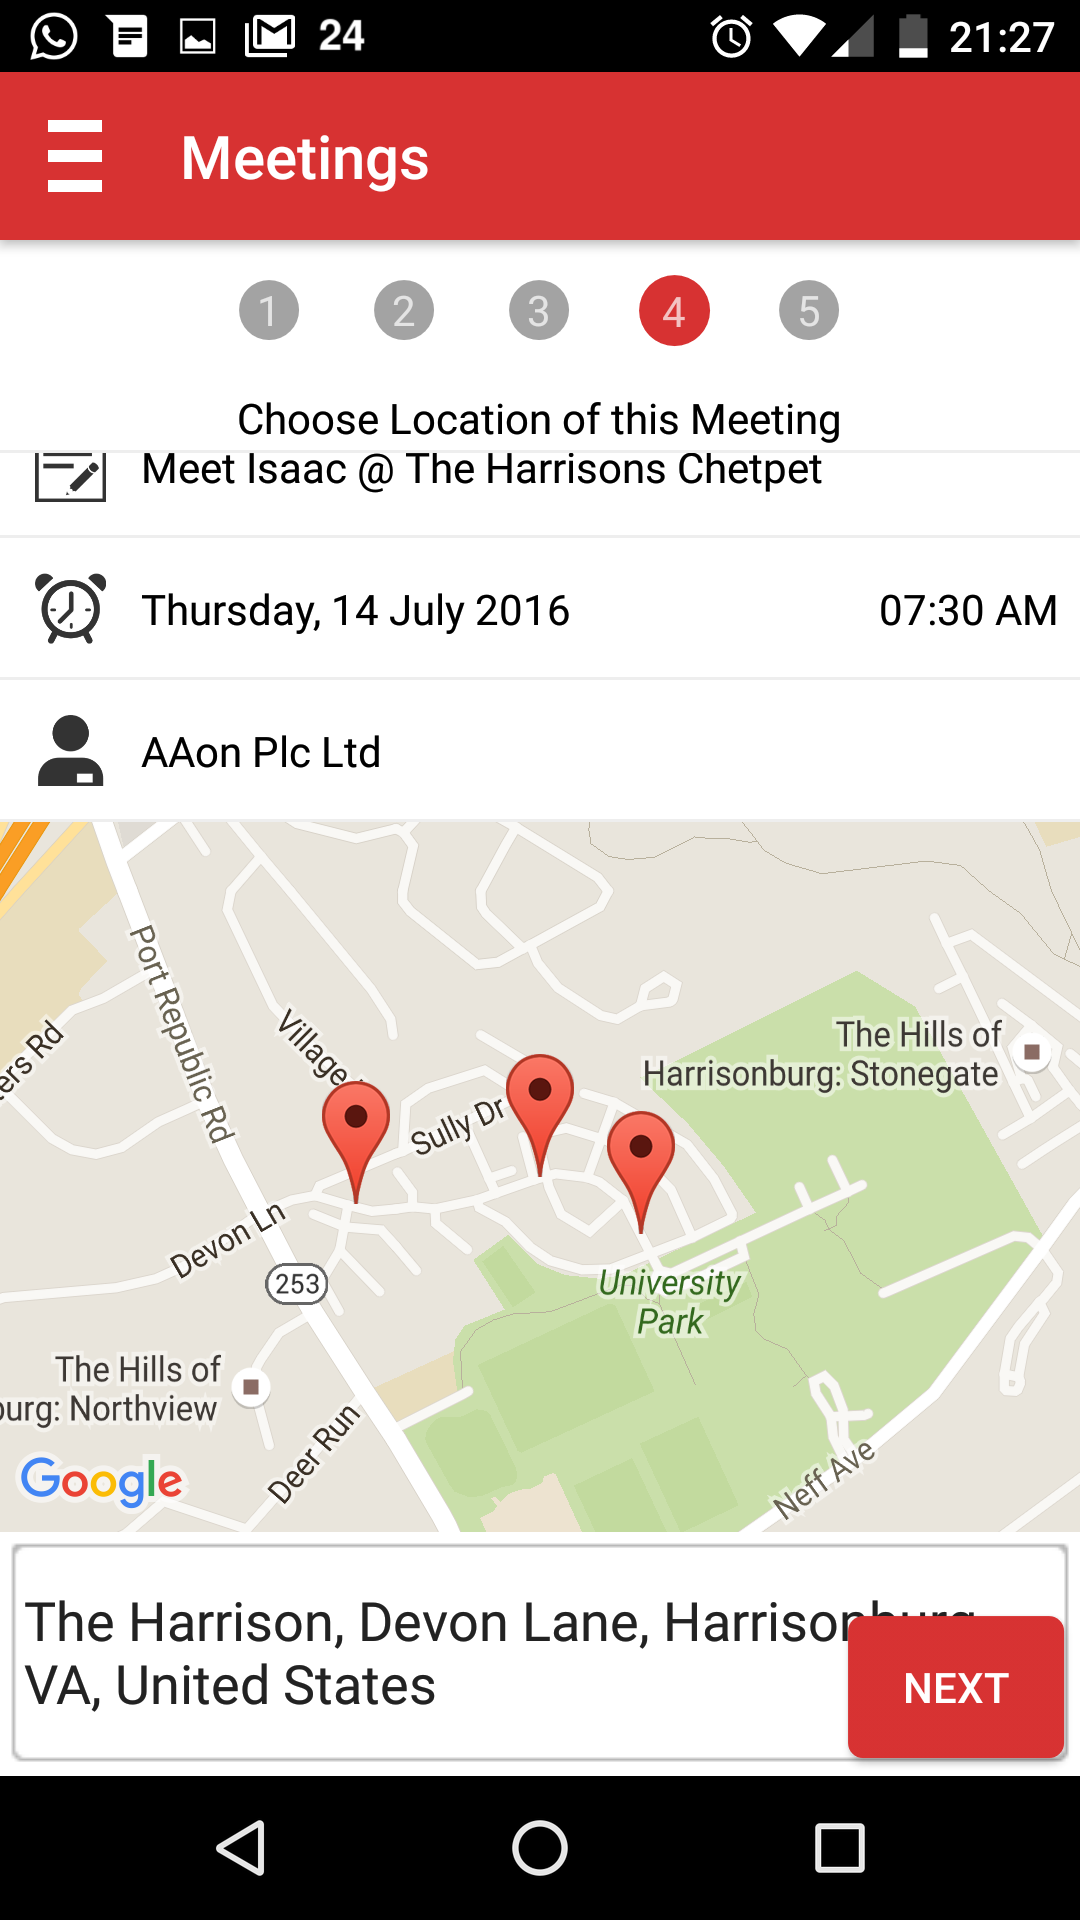 SOCAmps Mobile CRM Meeting - Pick Location